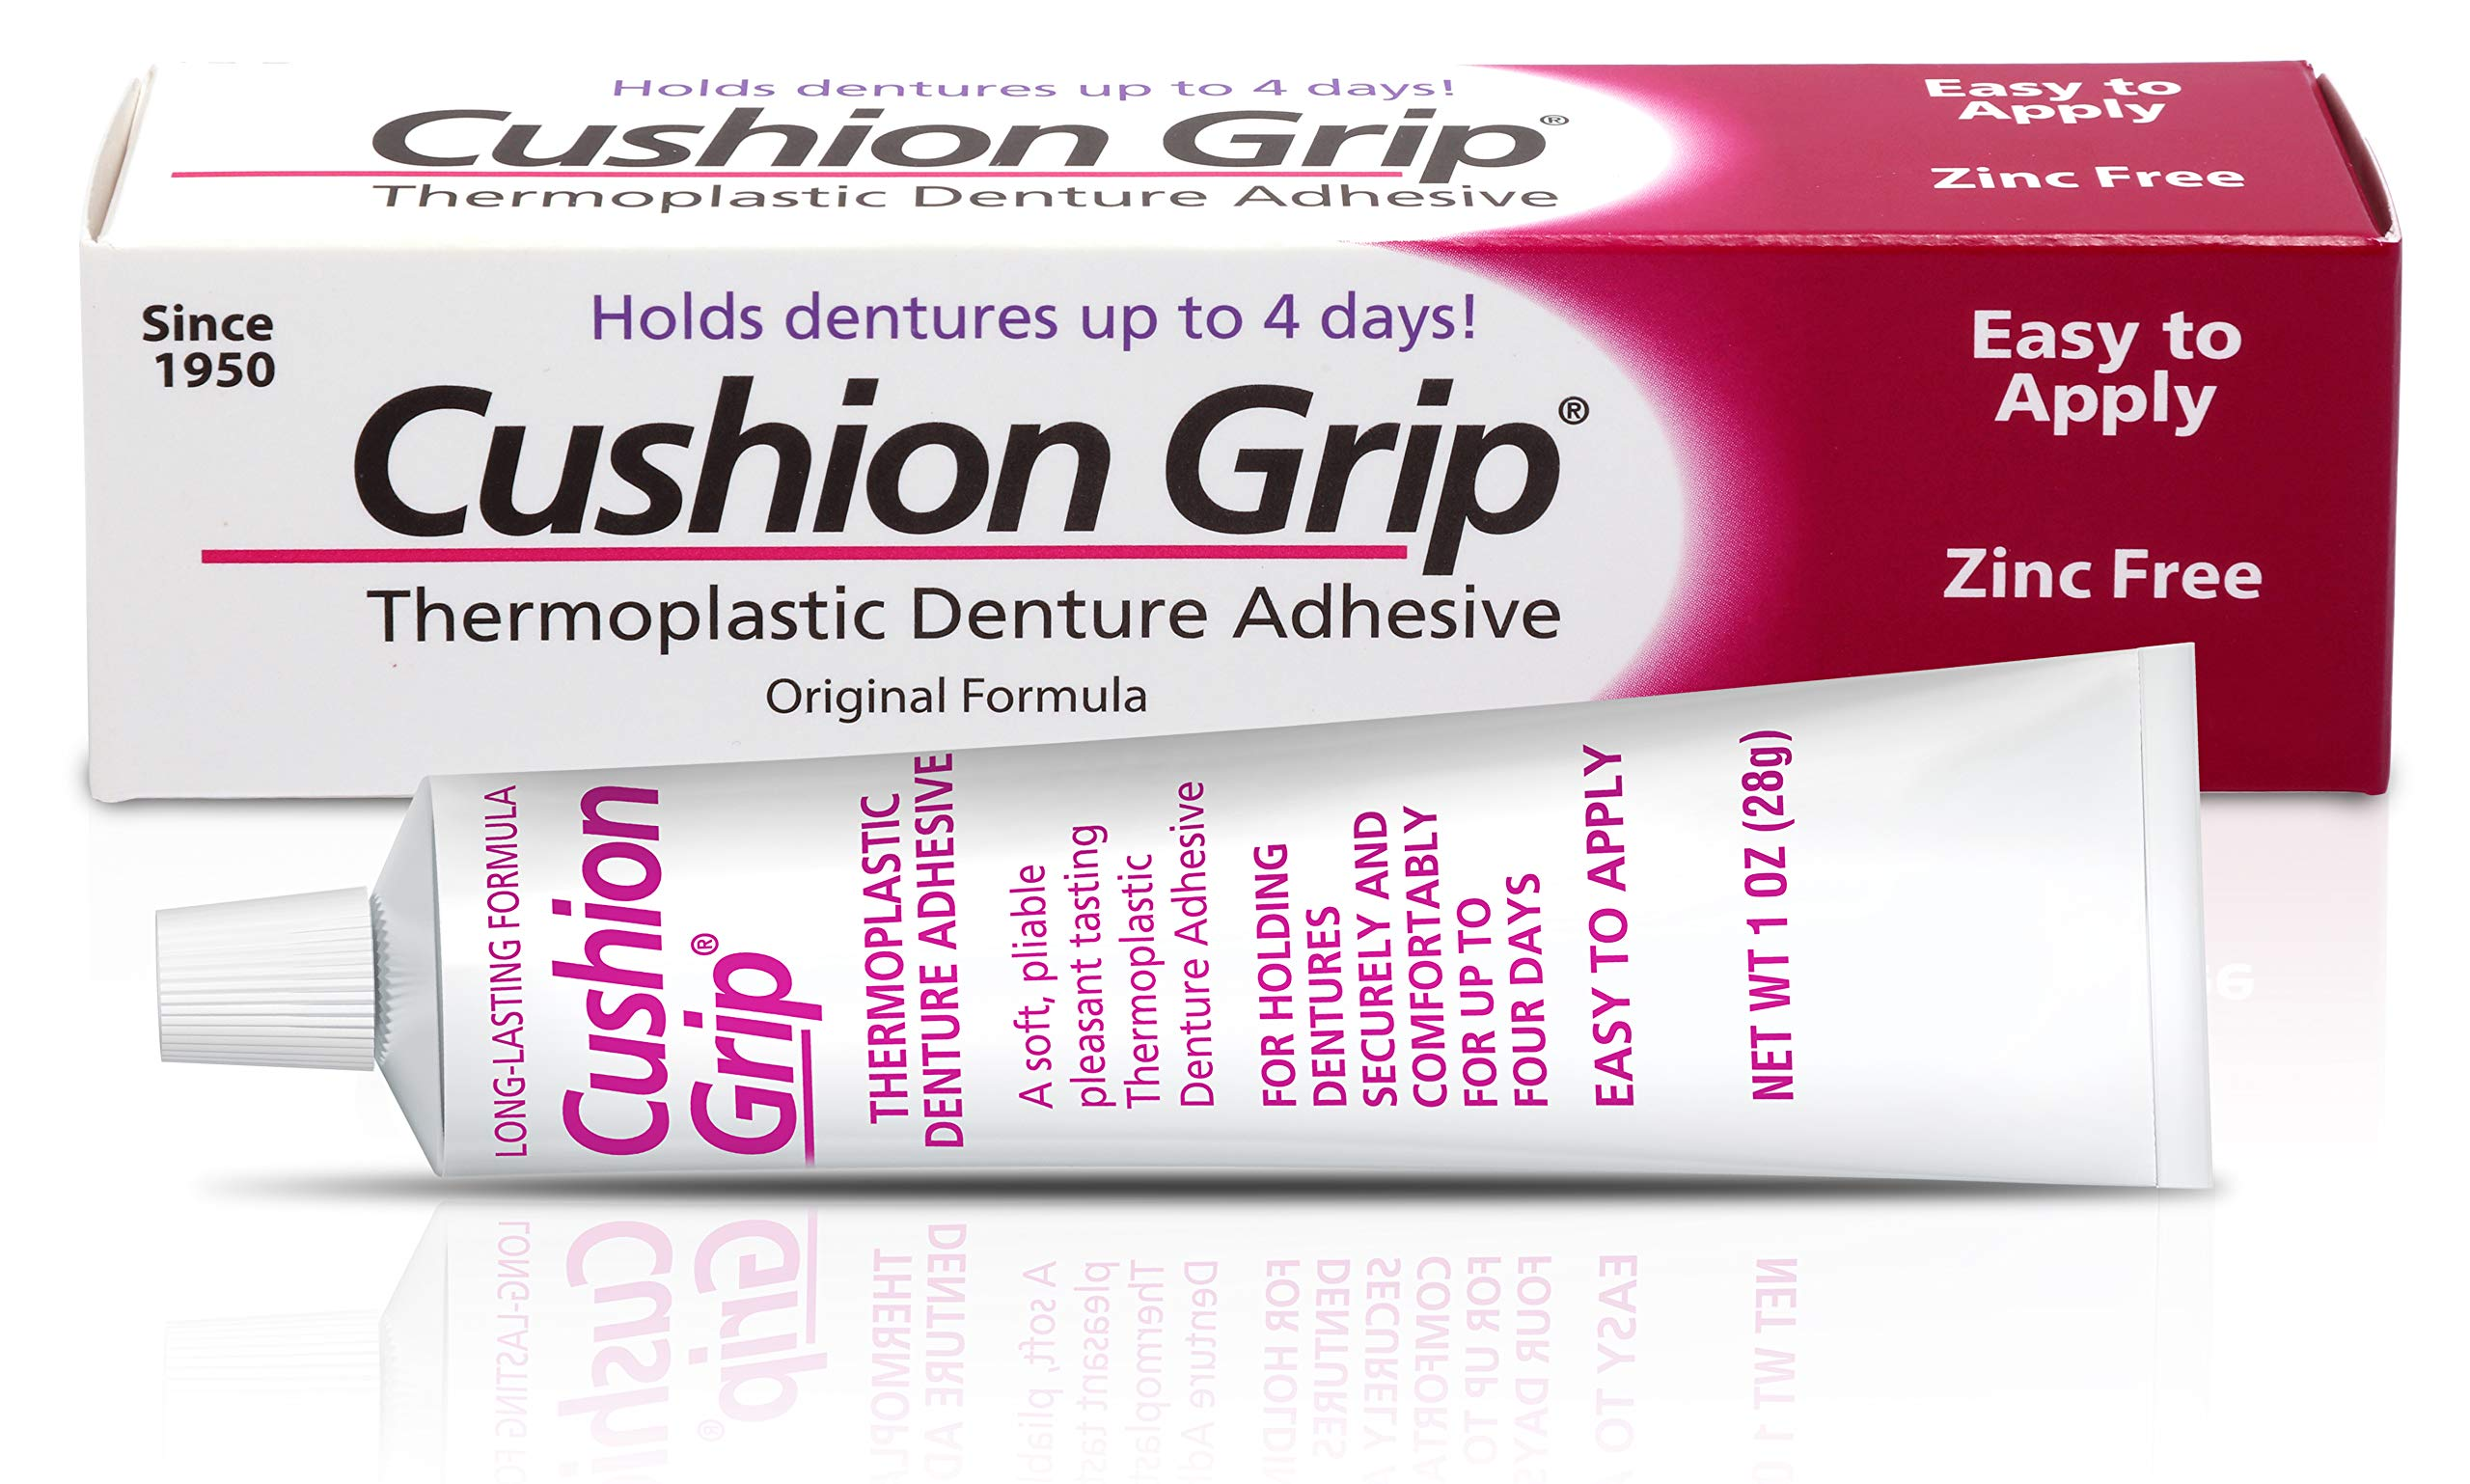 Cushion Grip - Thermoplastic Denture Adhesive 1 Oz (28 Grams)